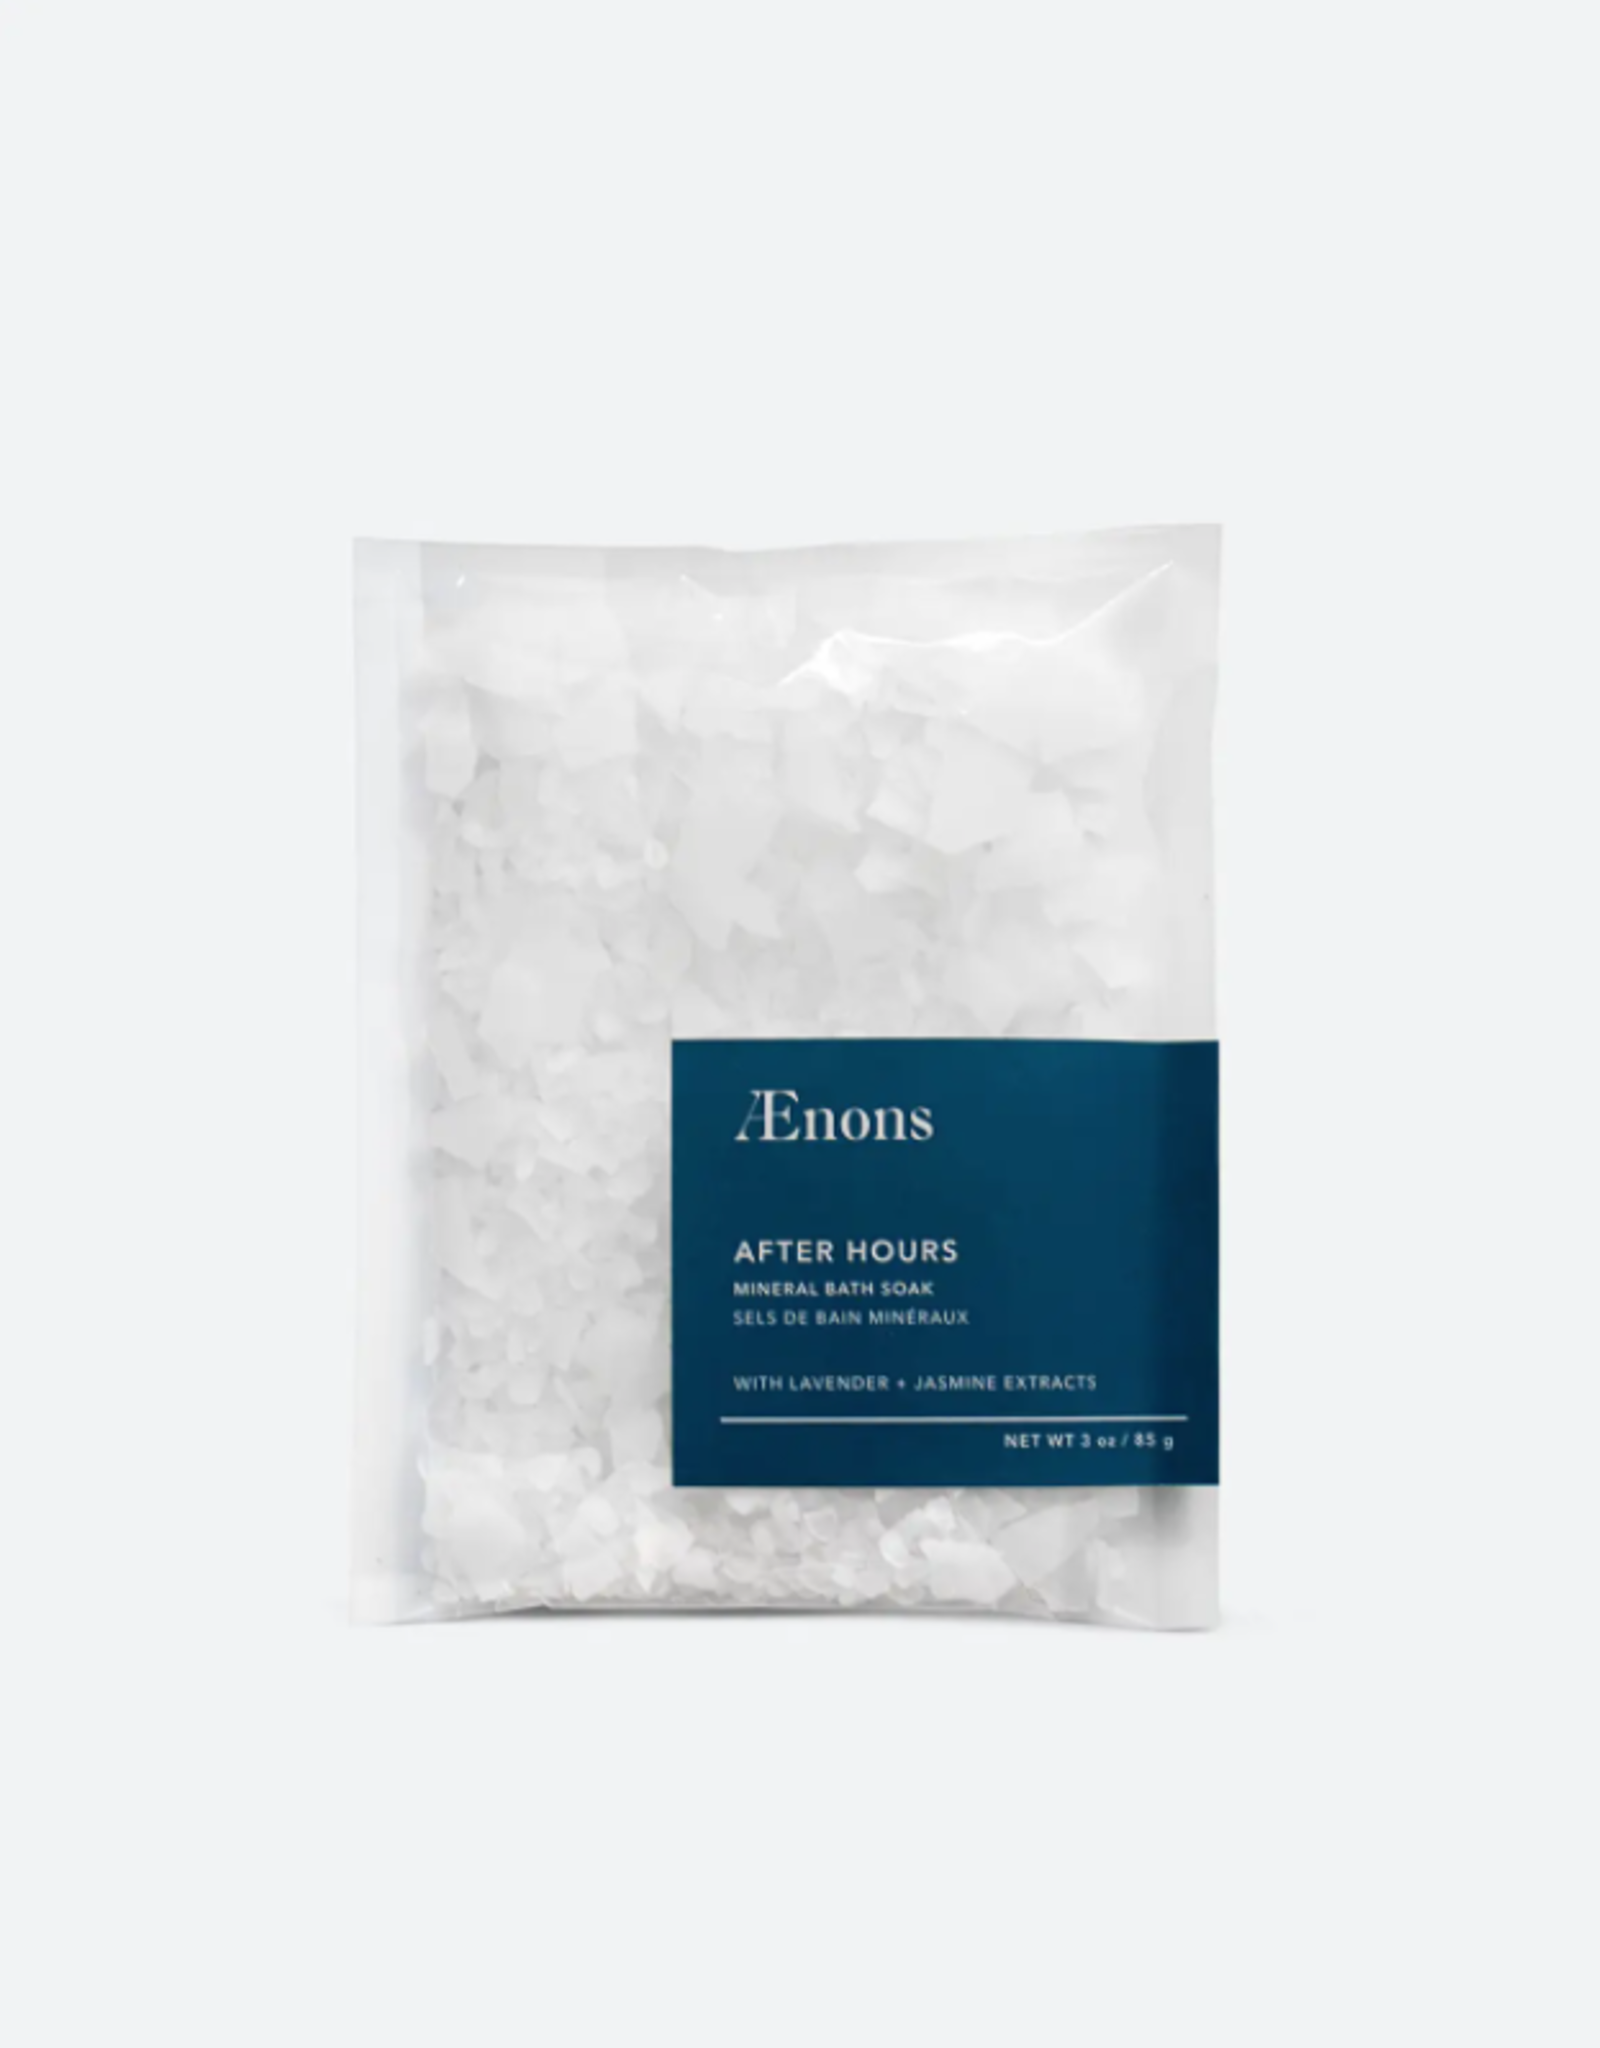 After Hours Mineral Bath Soak Single-Use